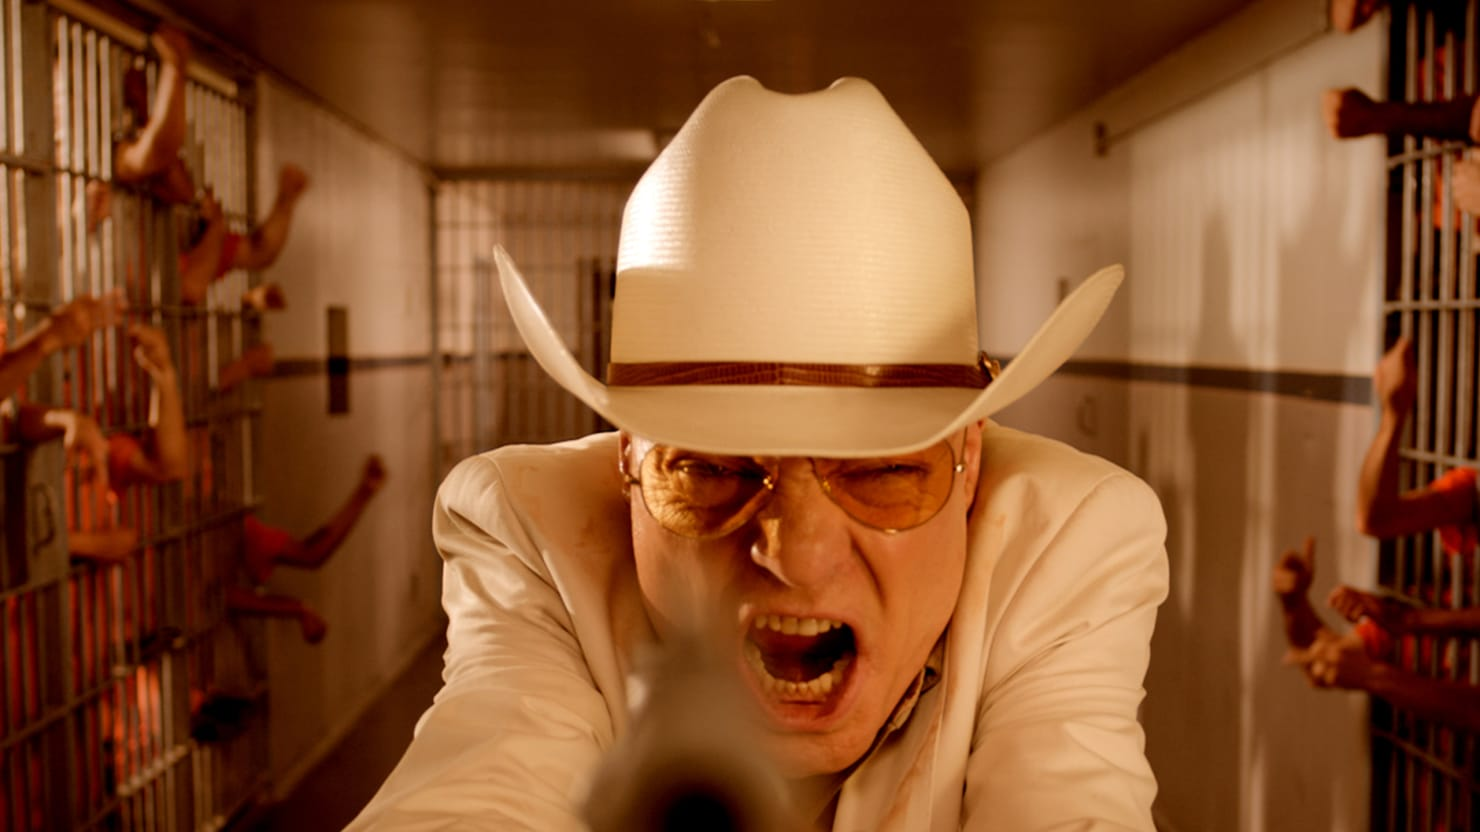 'The Human Centipede 3 (Final Sequence)': The Most Offensive Movie of the Year